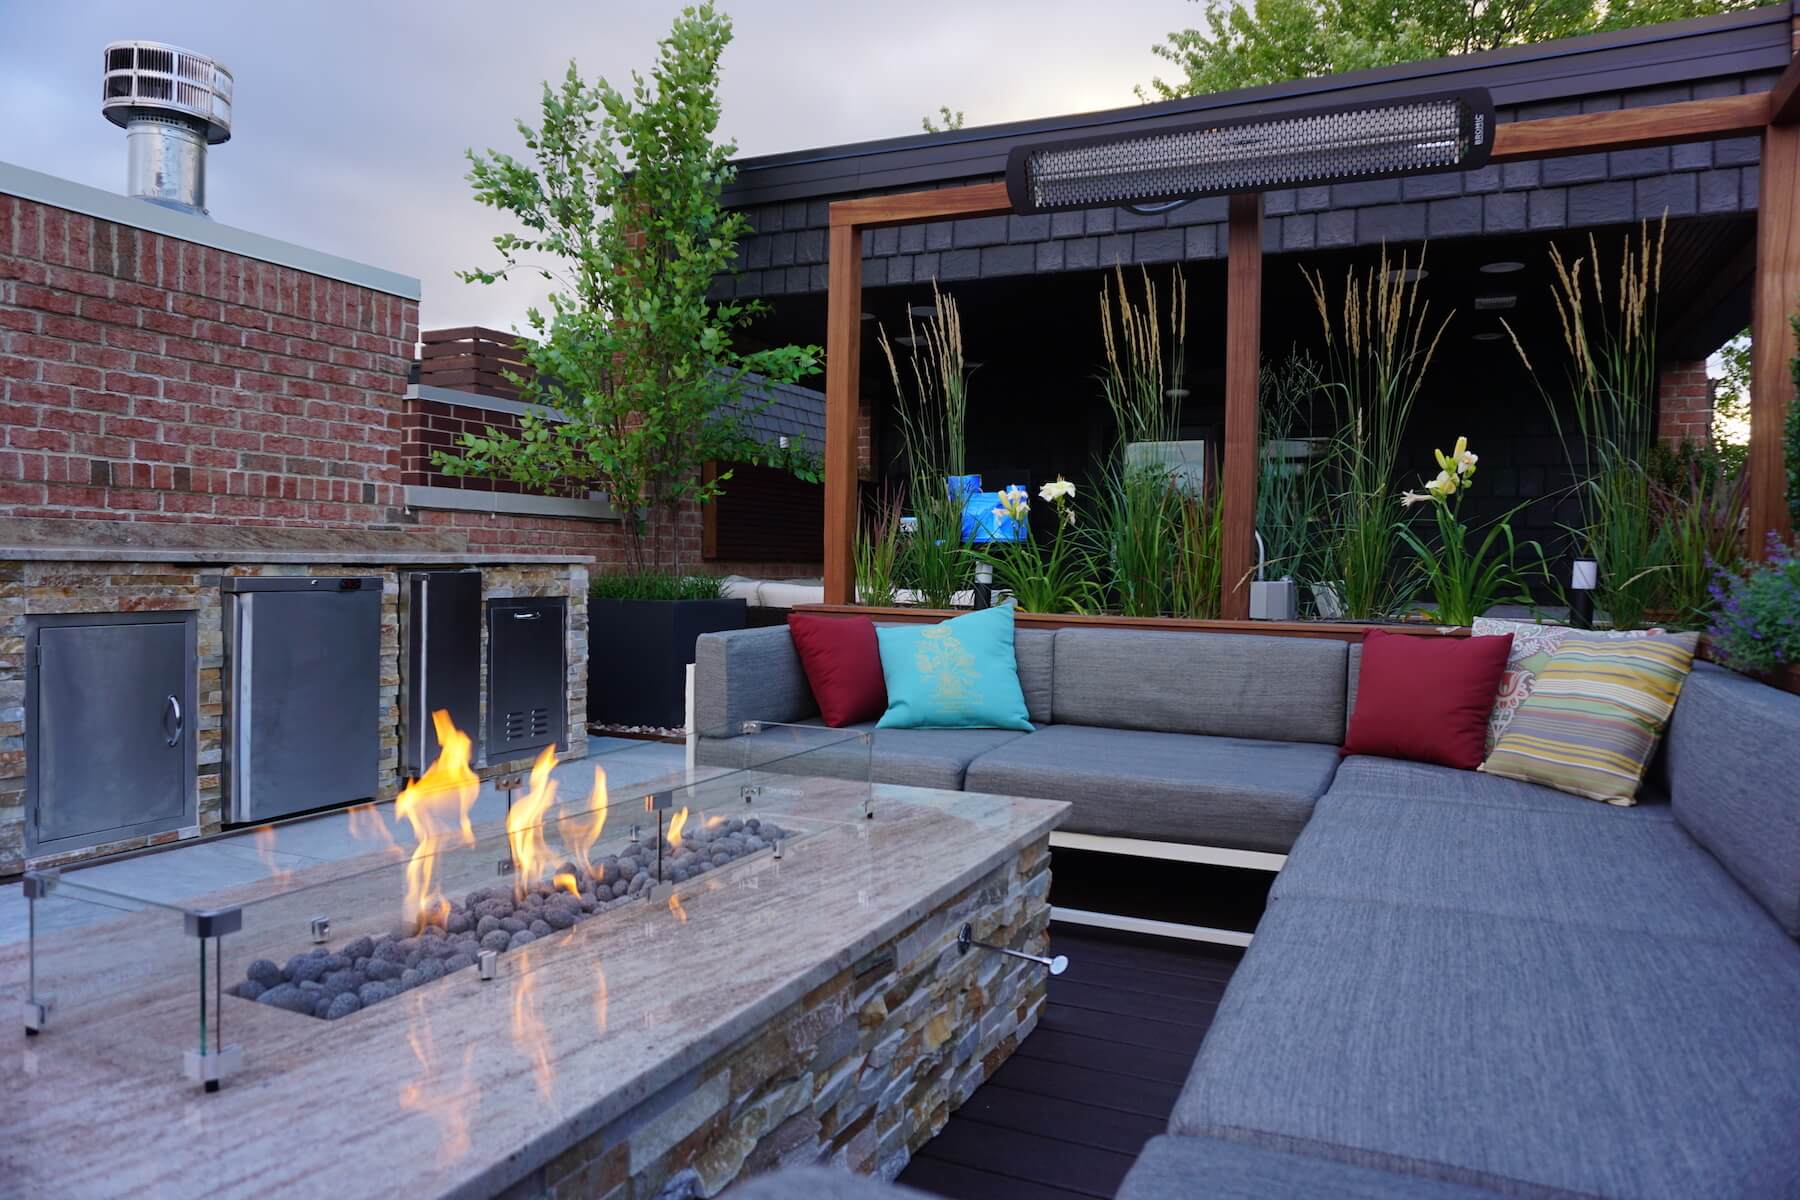 Fire Table With Lounge Area